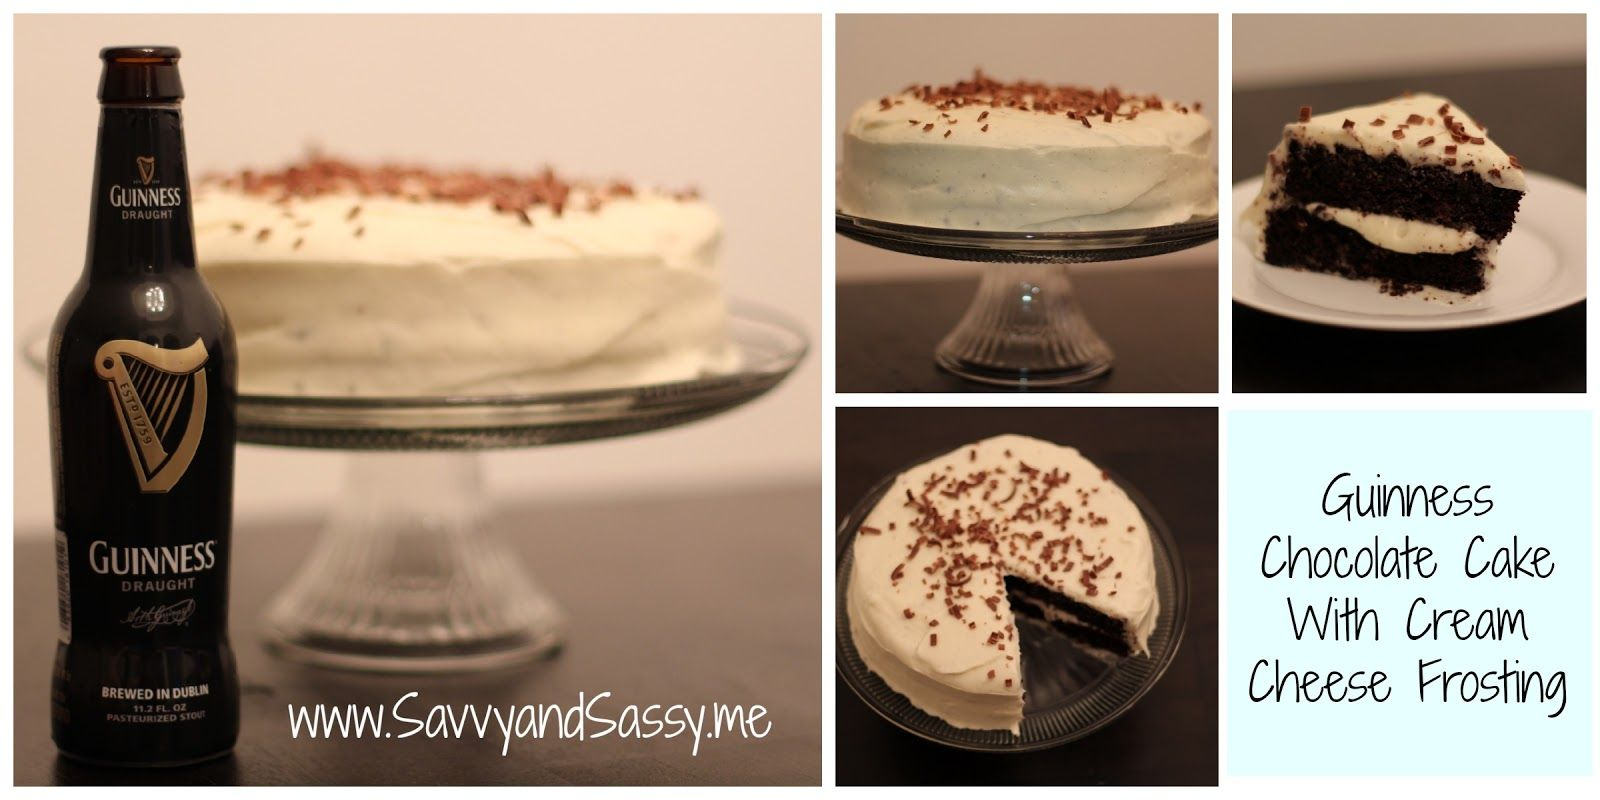 Savvy and Sassy: Guinness Chocolate Cake With Cream Cheese Frosting